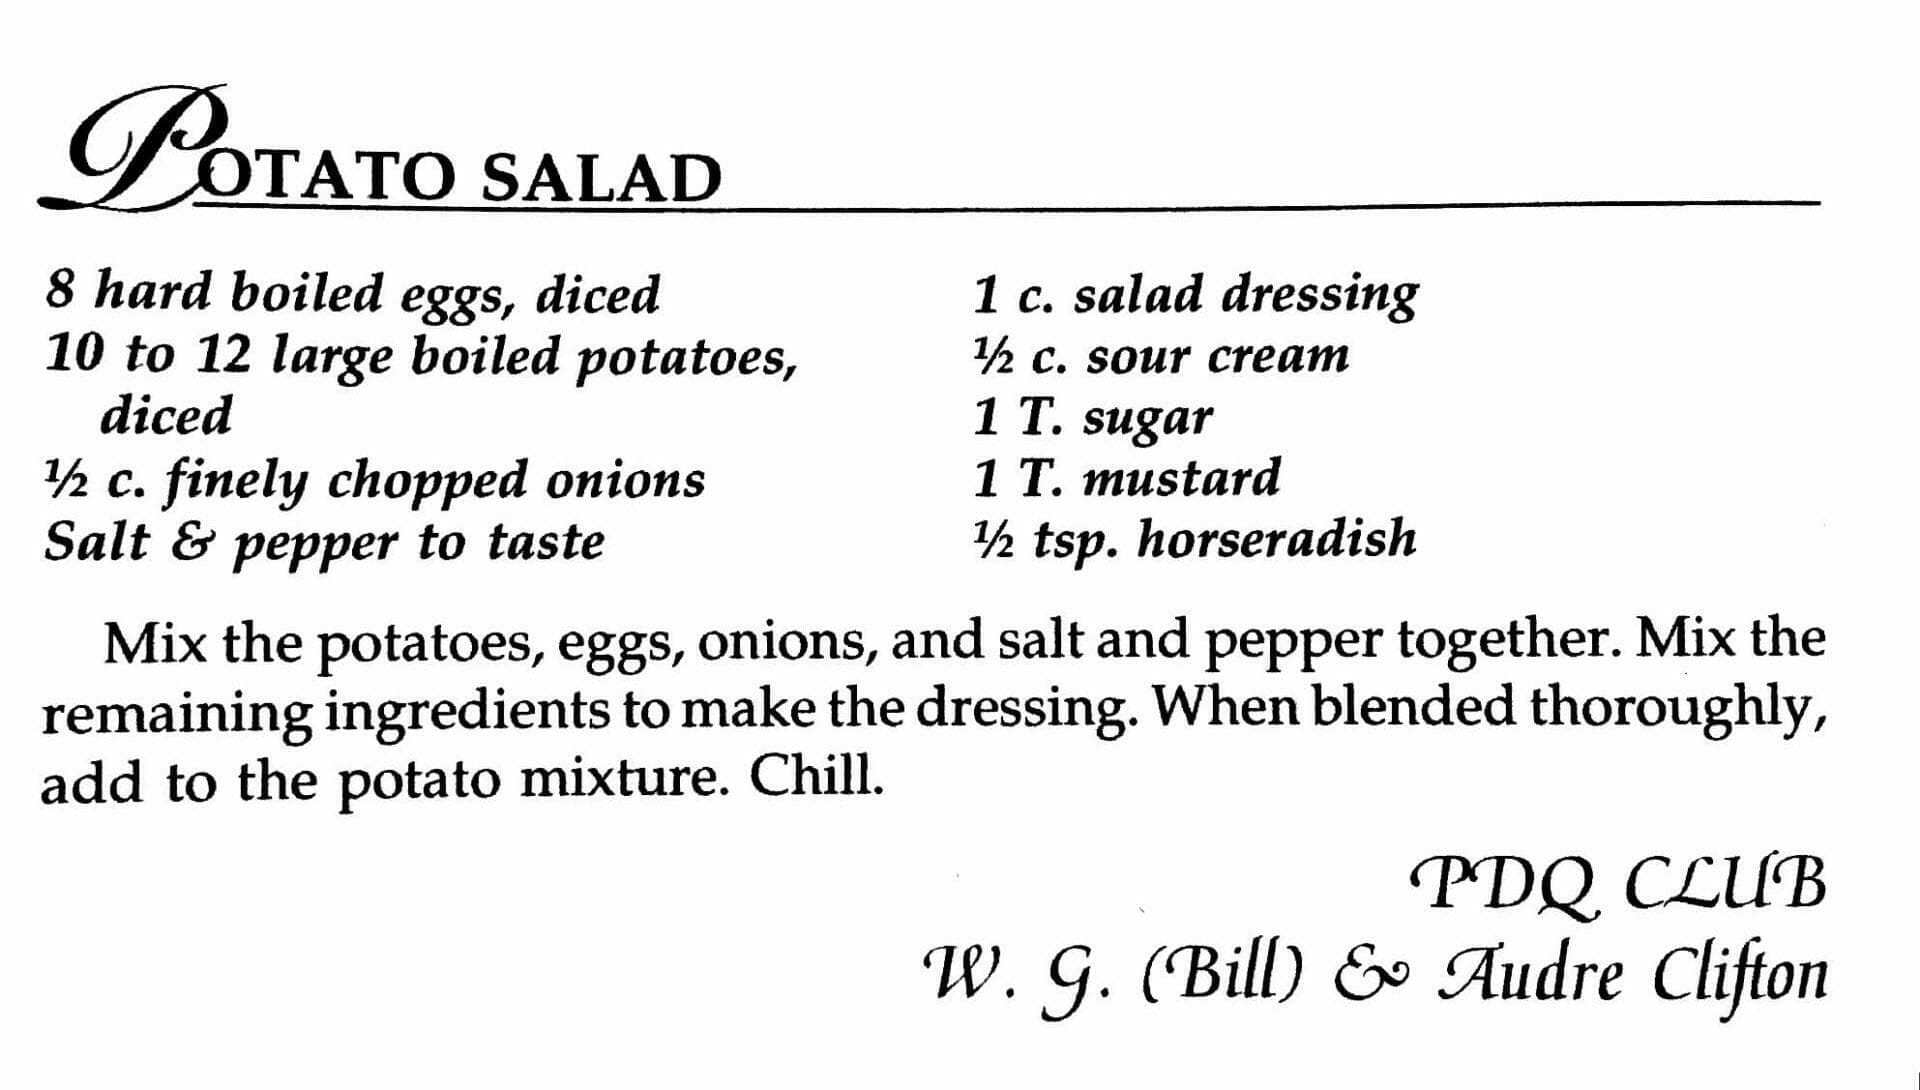 Potato Salad from PDQ Club, A Taste of History Cookbook, Watford City, ND